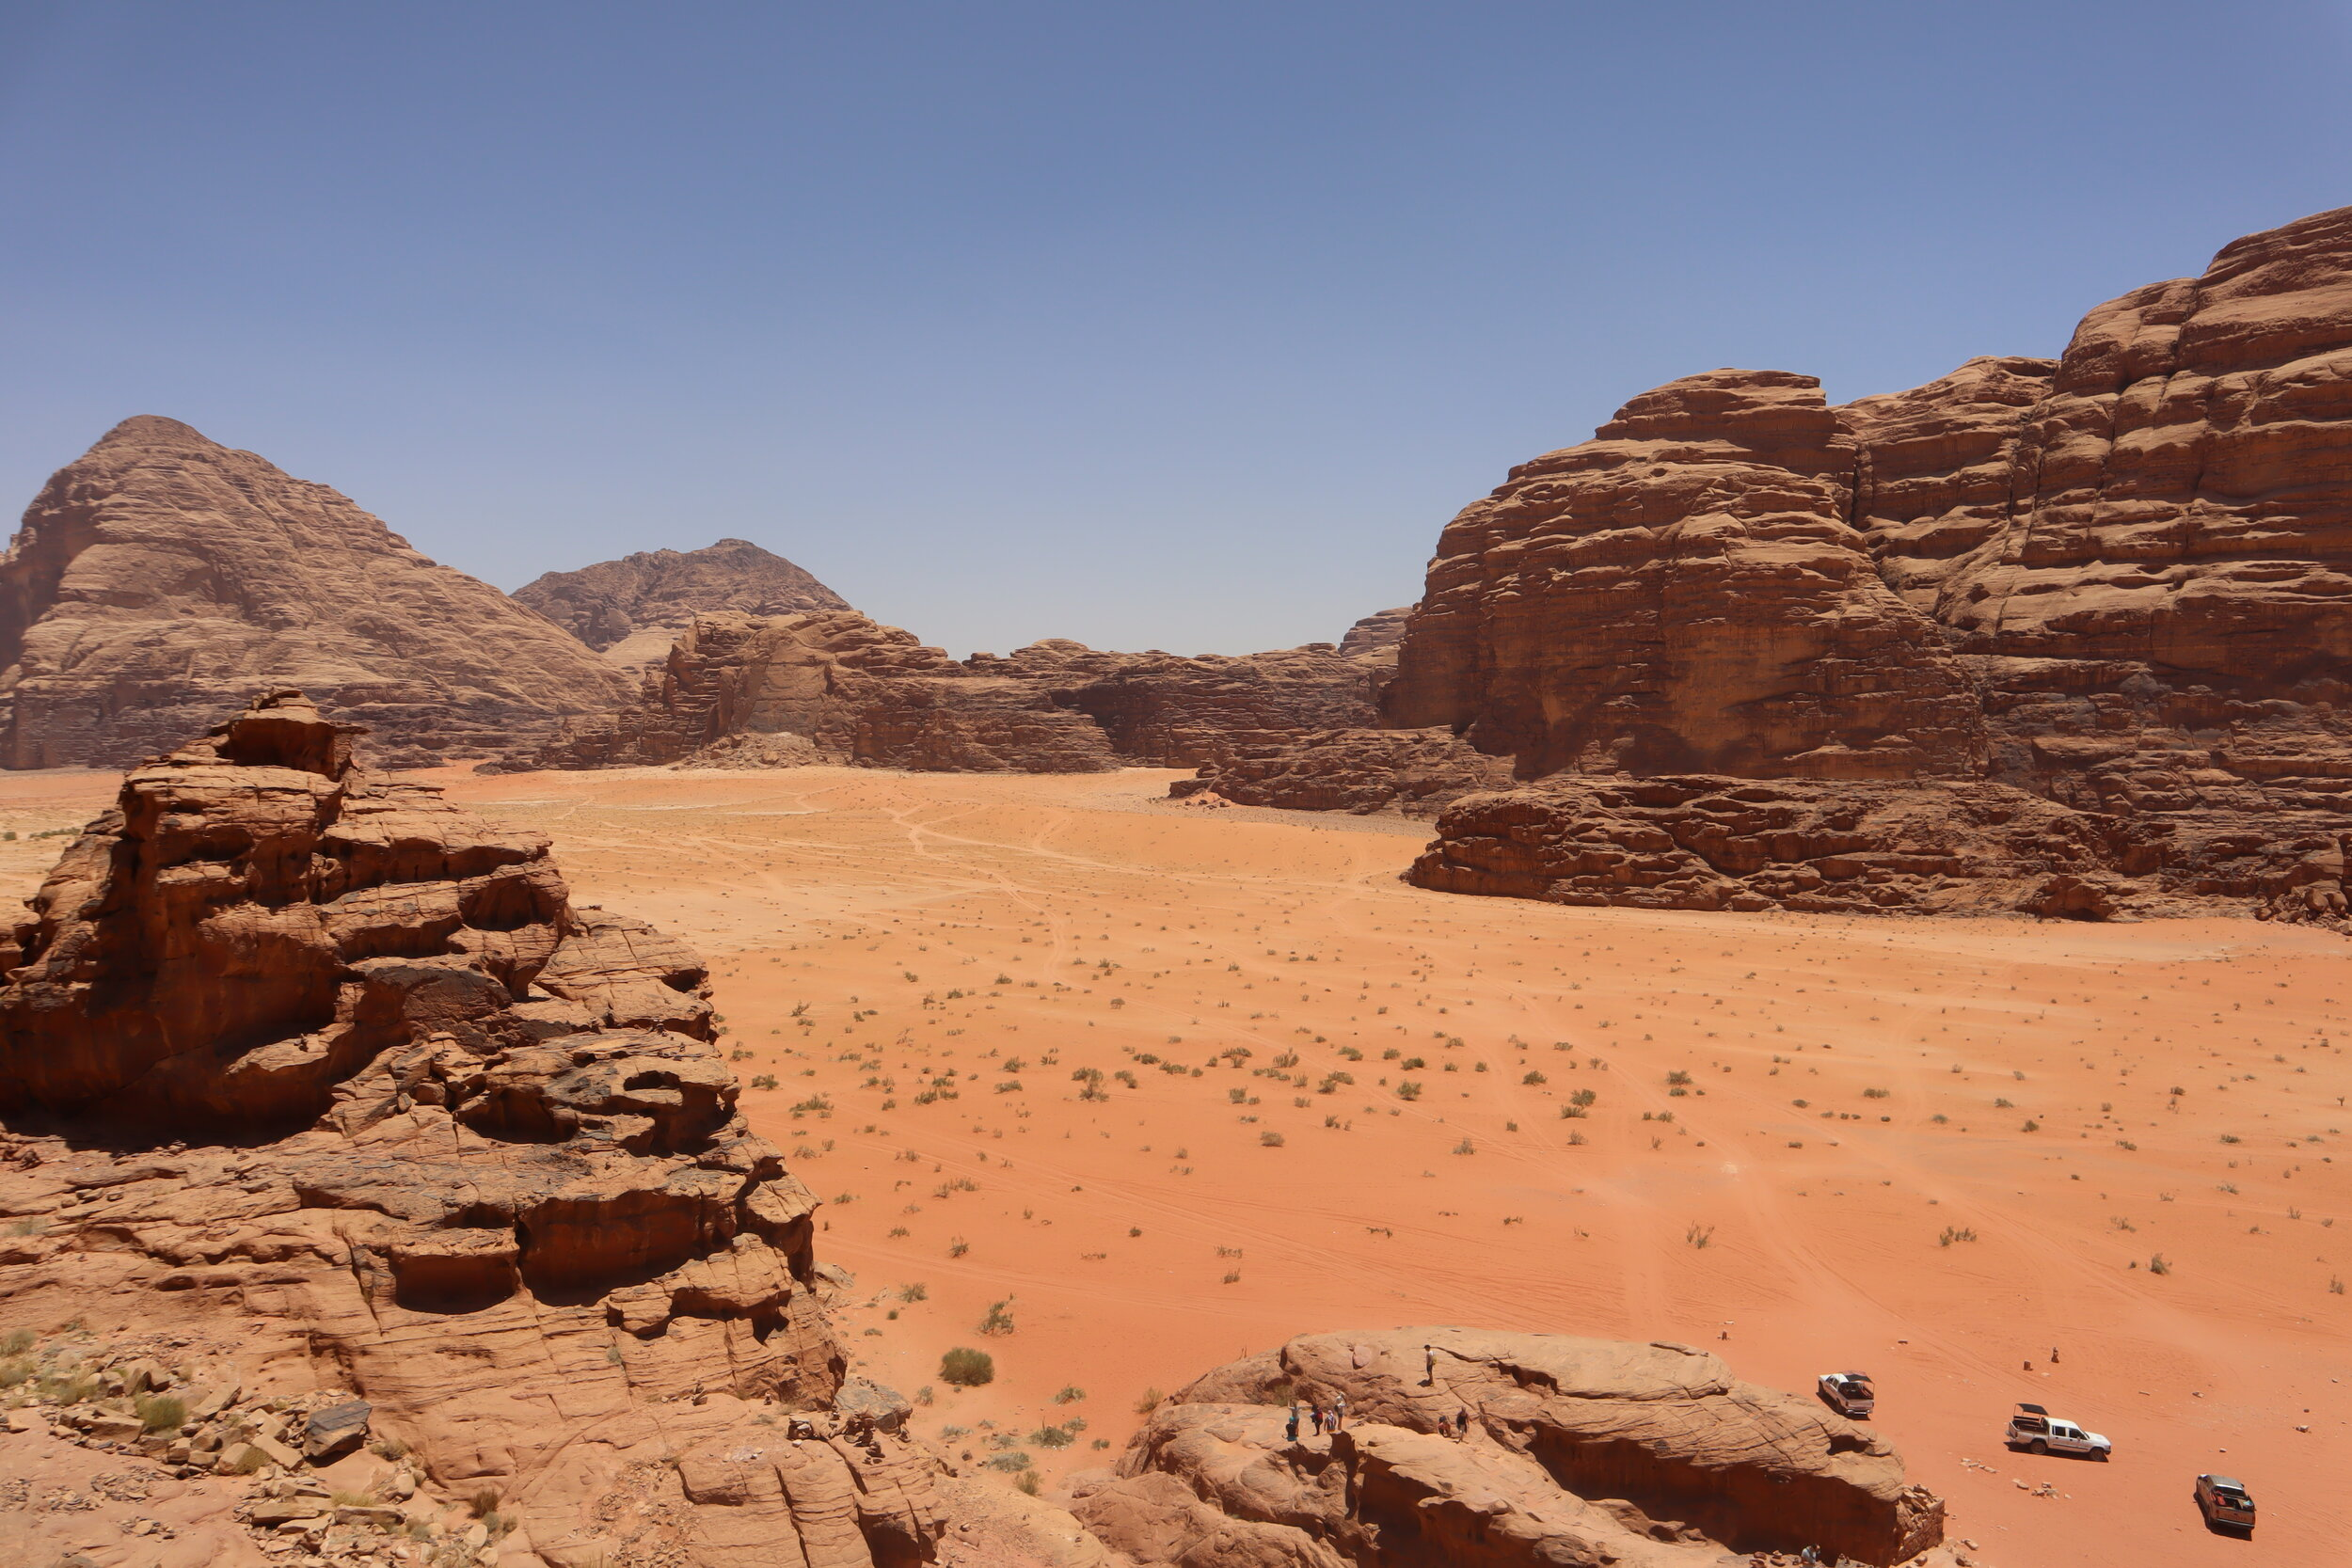 View from atop the rocks of Wadi Rum